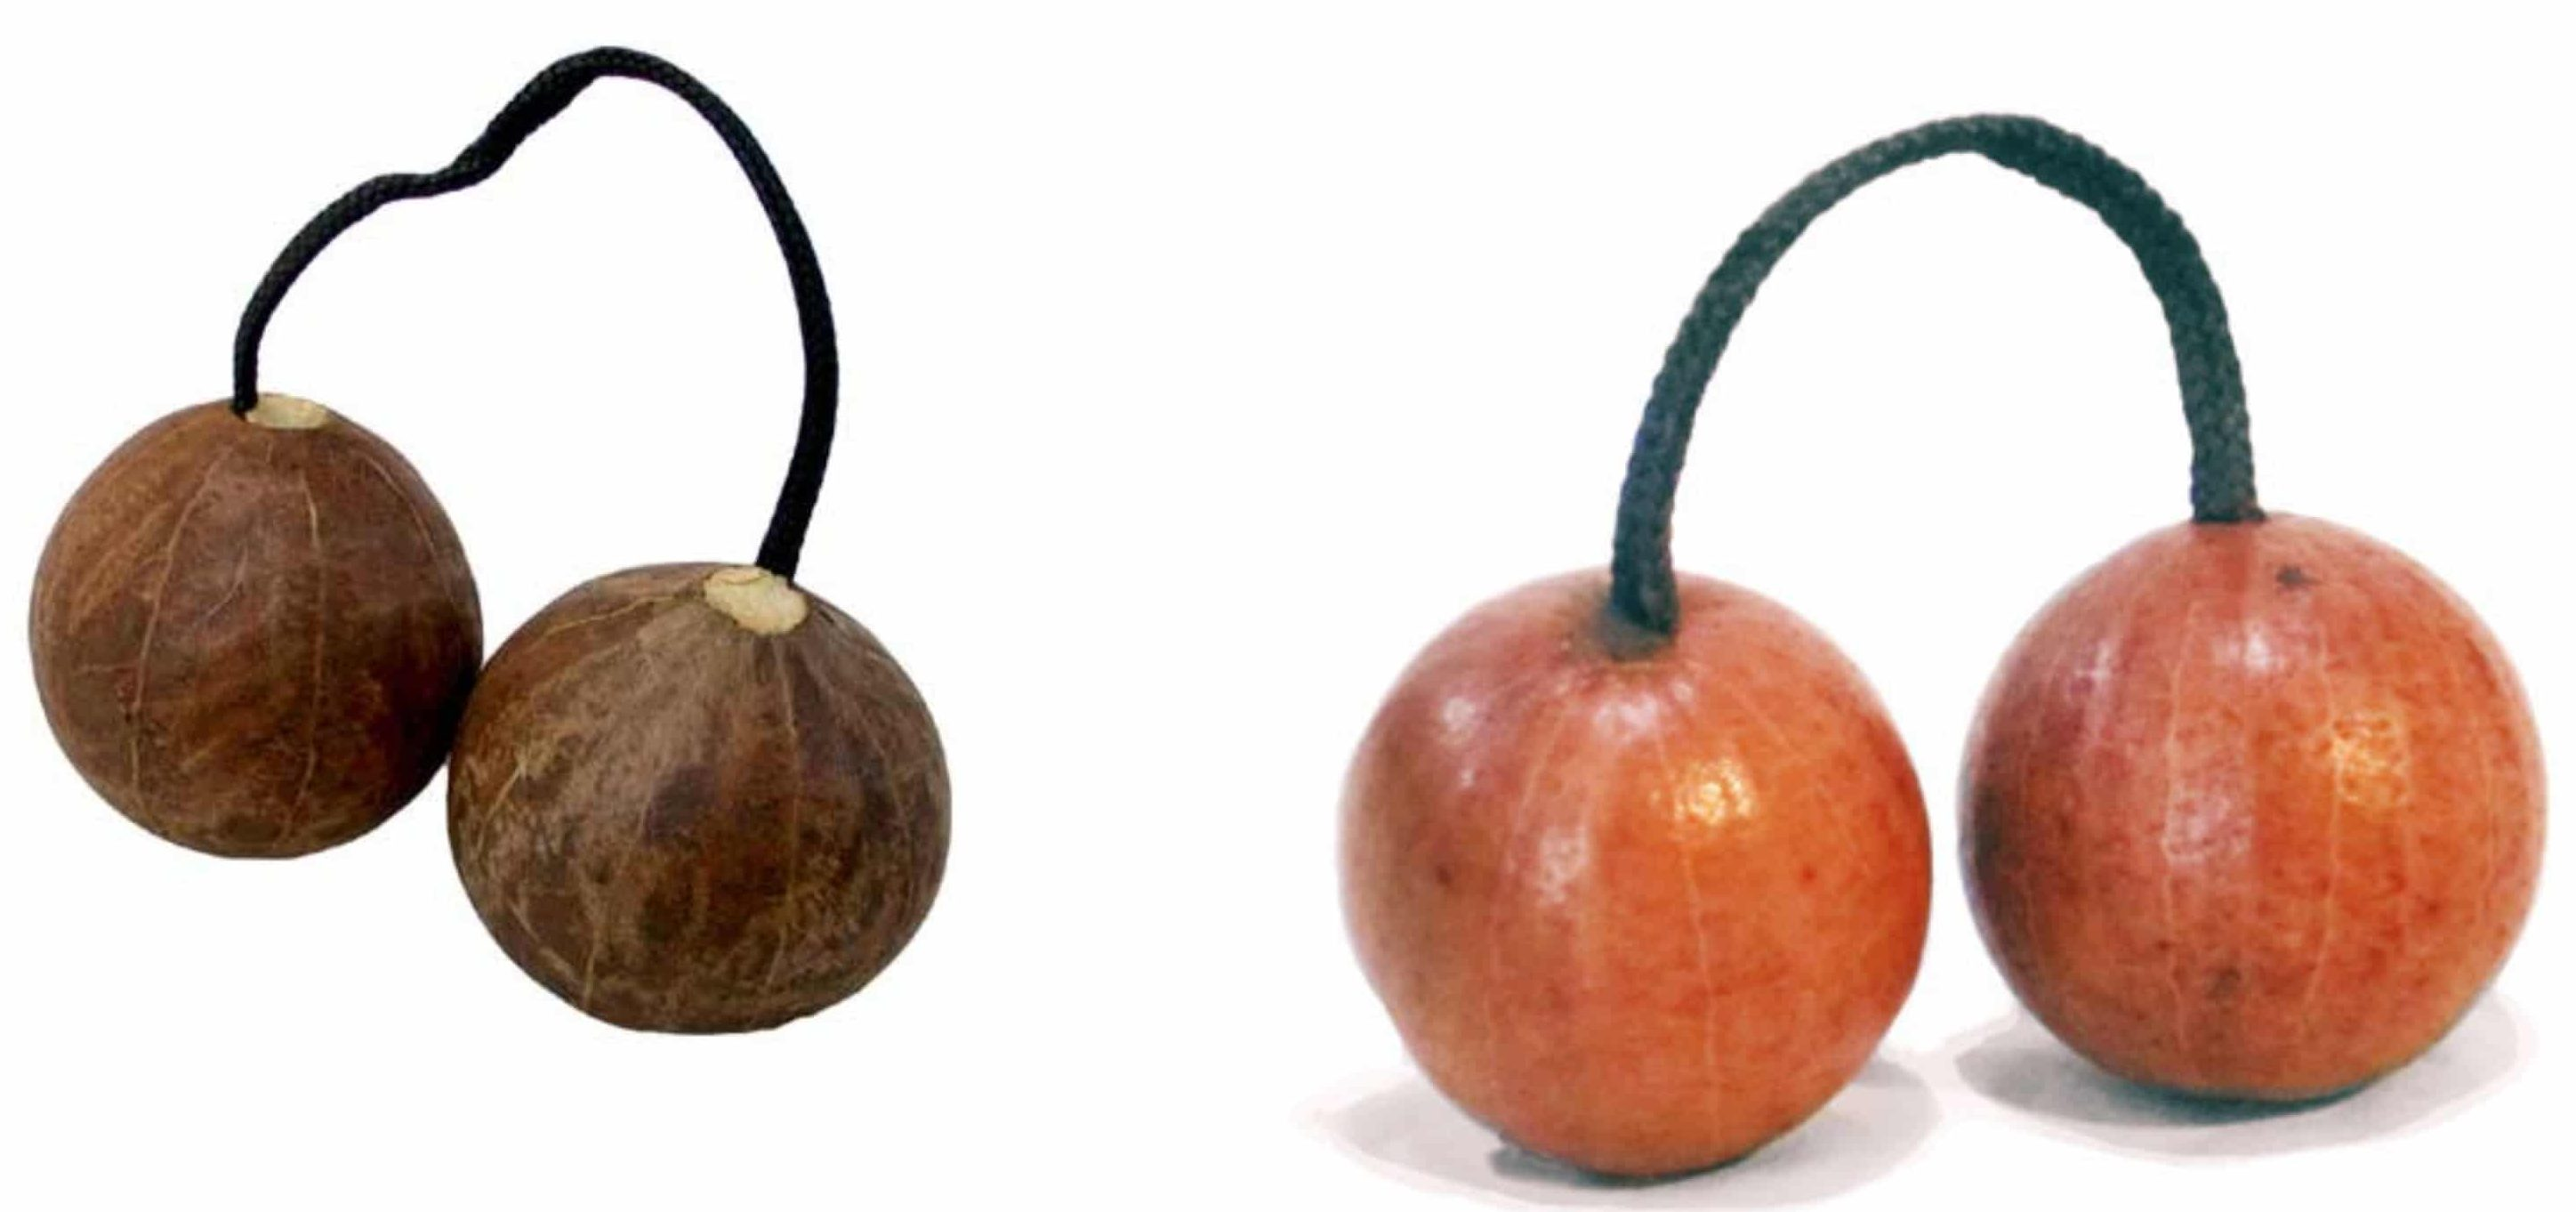 Originating from Ghana, the aslatua is played by holding and shaking one gourd in the palm while swinging the second gourd around.